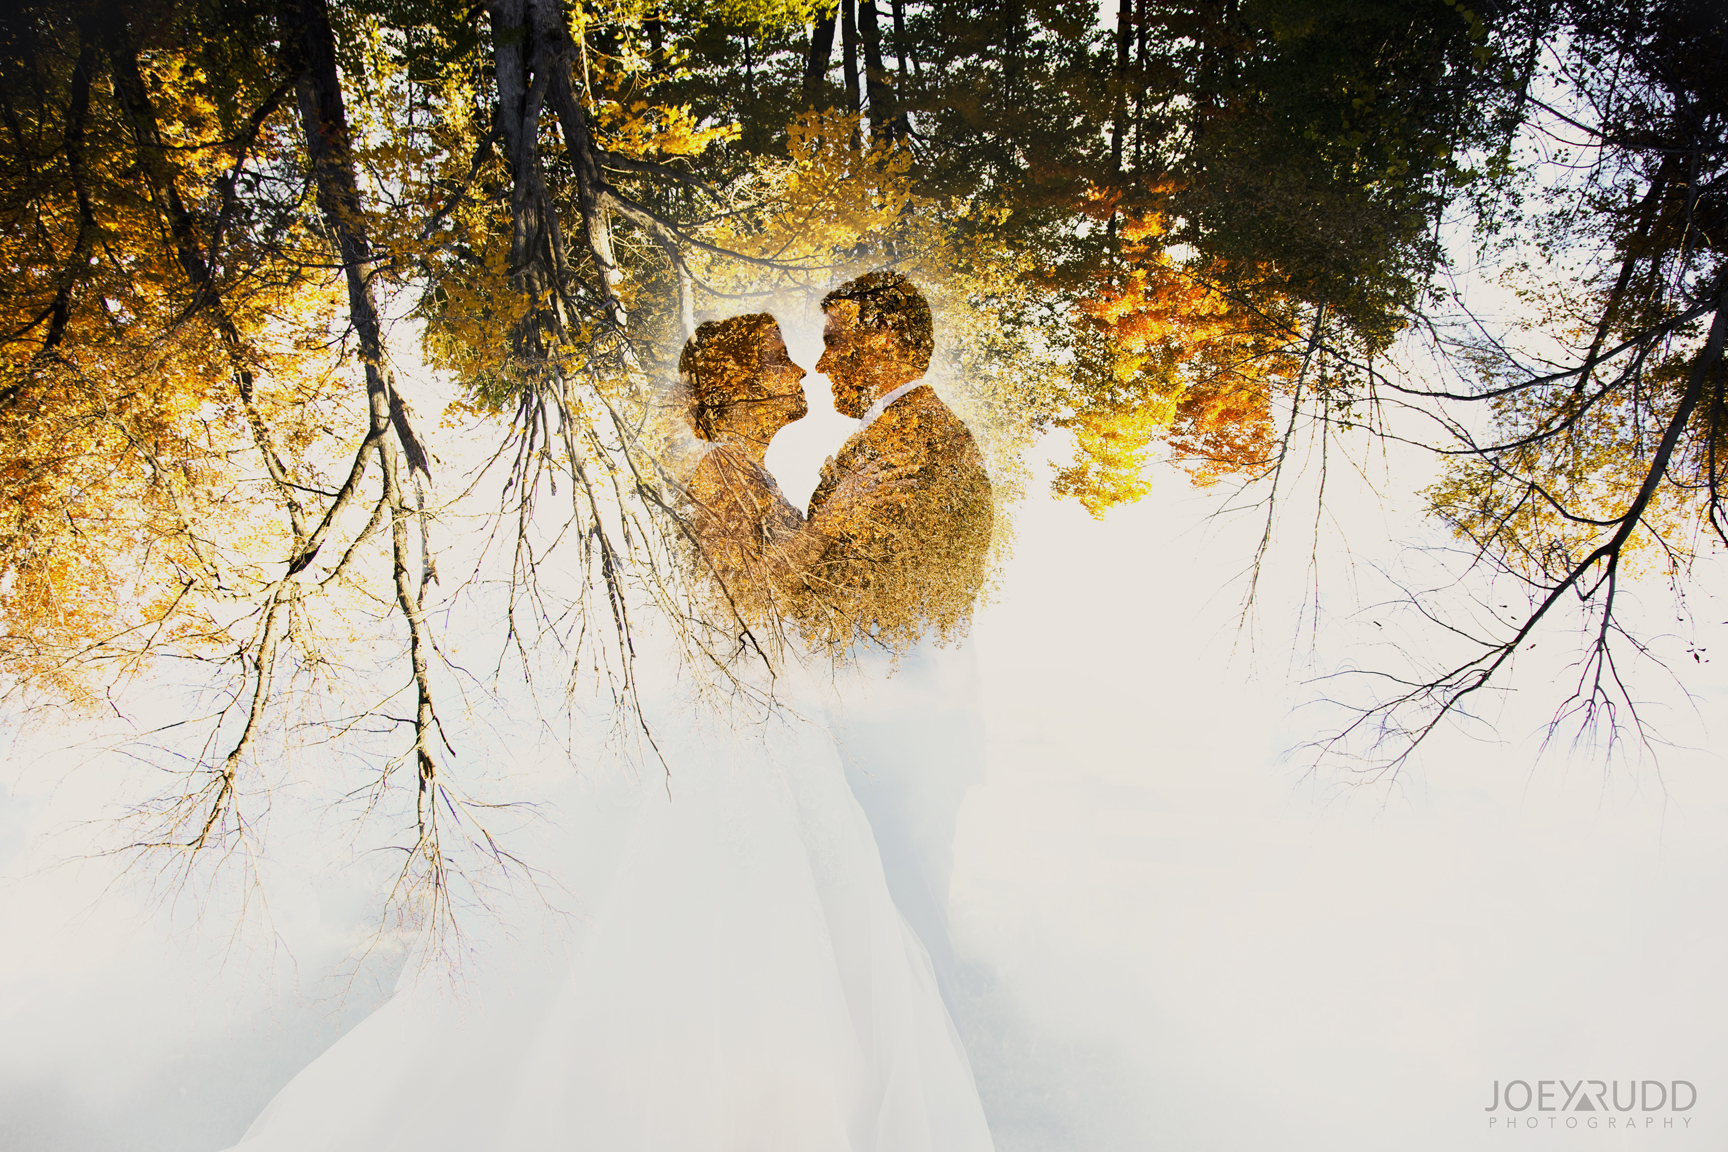 Double Exposure Photo by Joey Rudd Photography Award Winning Ottawa Wedding Photographer Strathmere